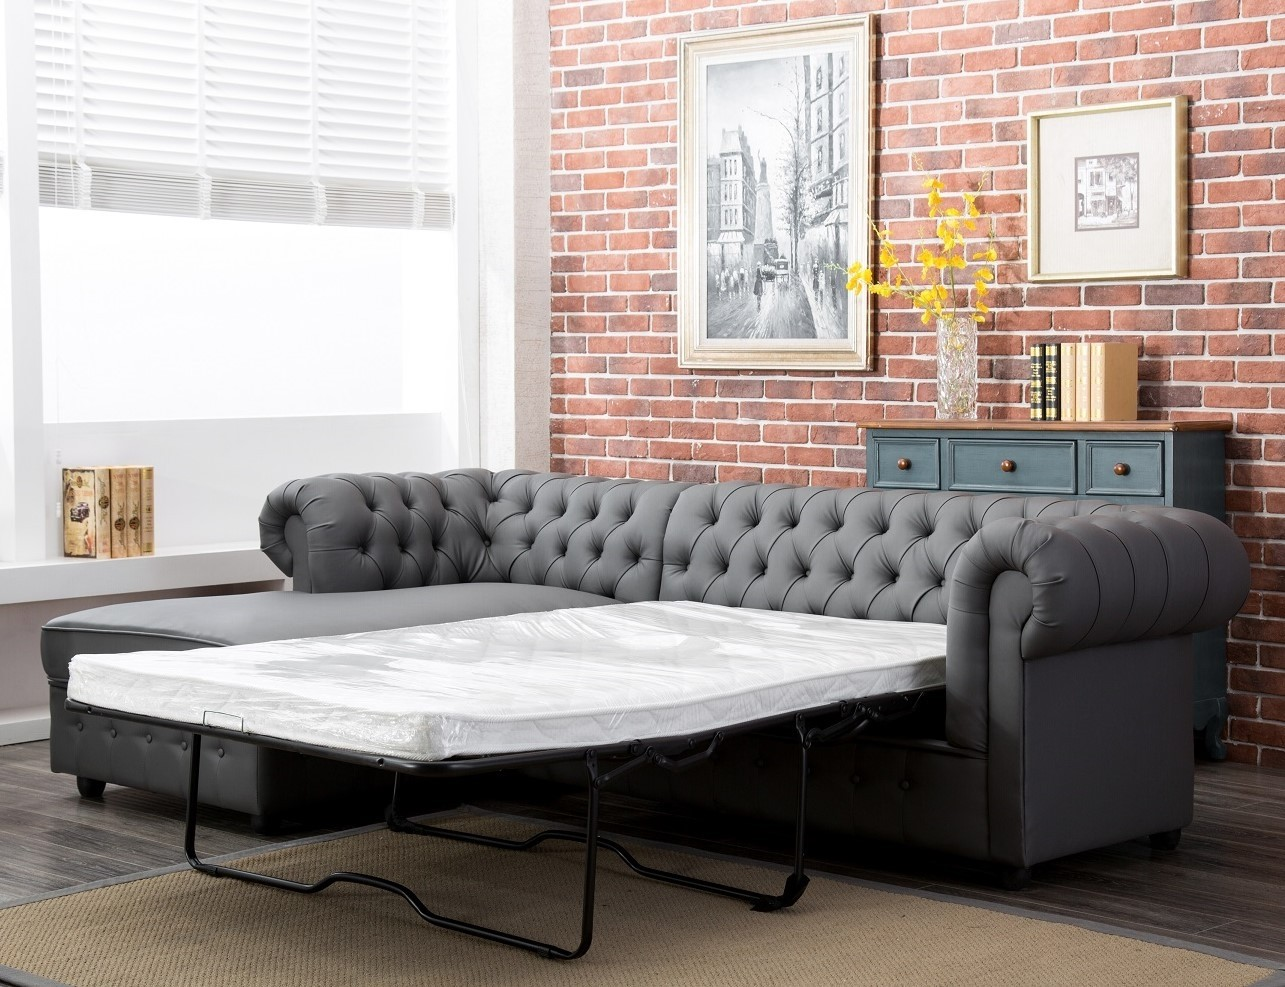 Empire Chesterfield Corner Sofa Bed In Grey Pu Leather Abreo Home